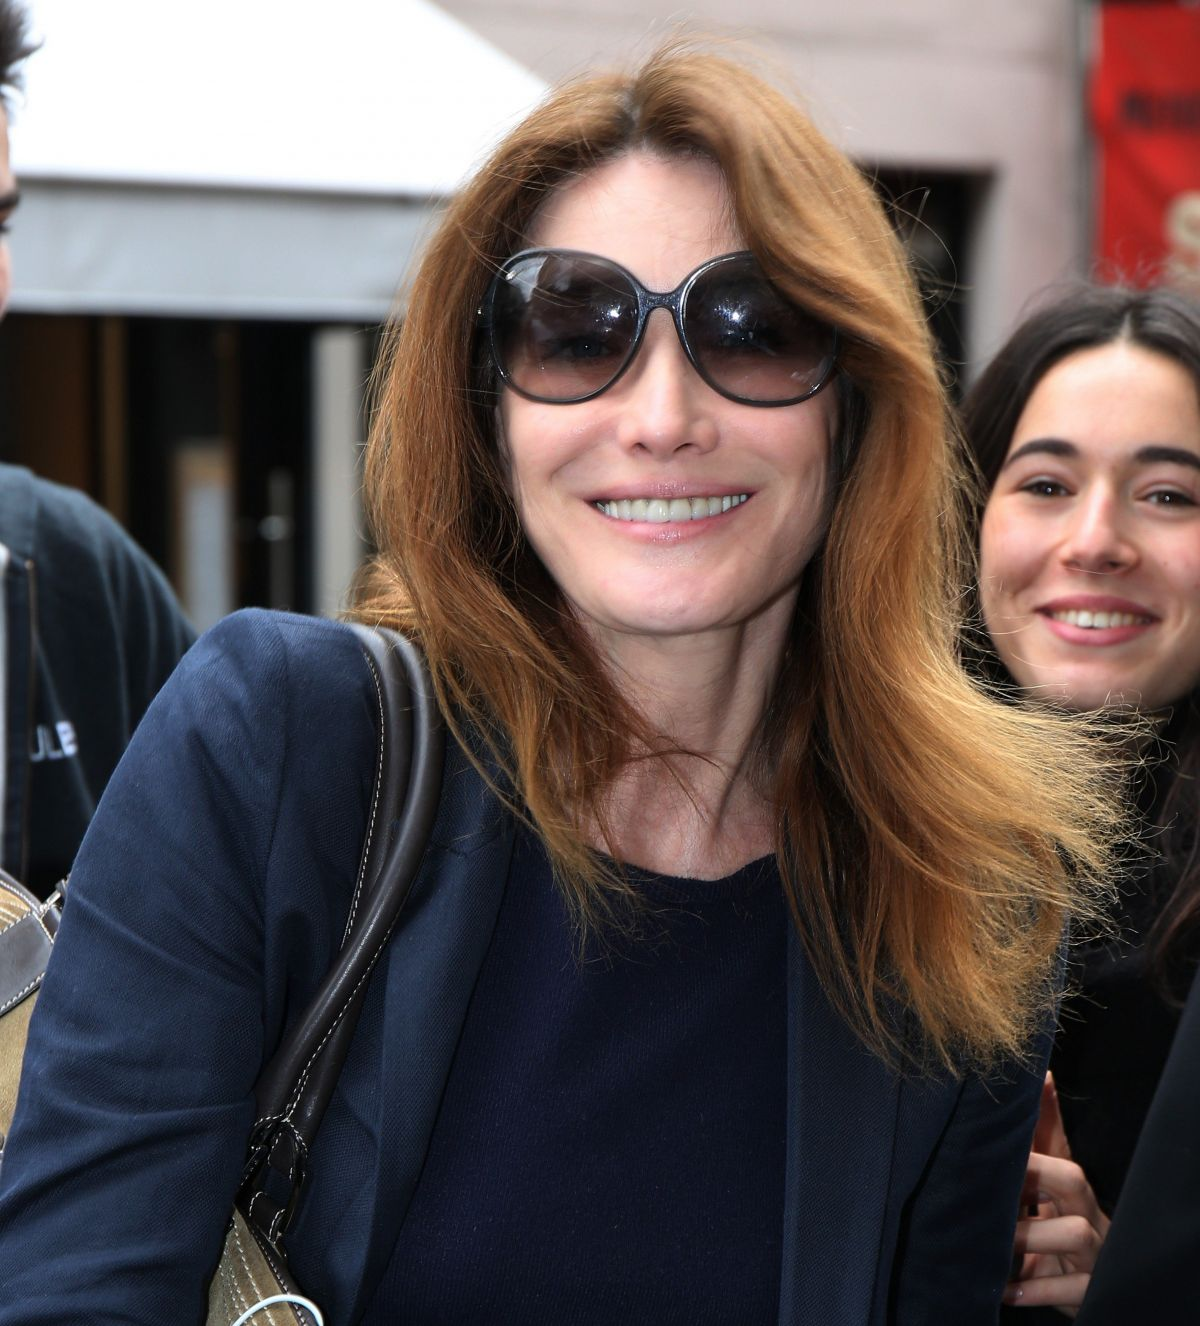 CARLA BRUNI at RTL Radio Studios in Paris 06/21/2016